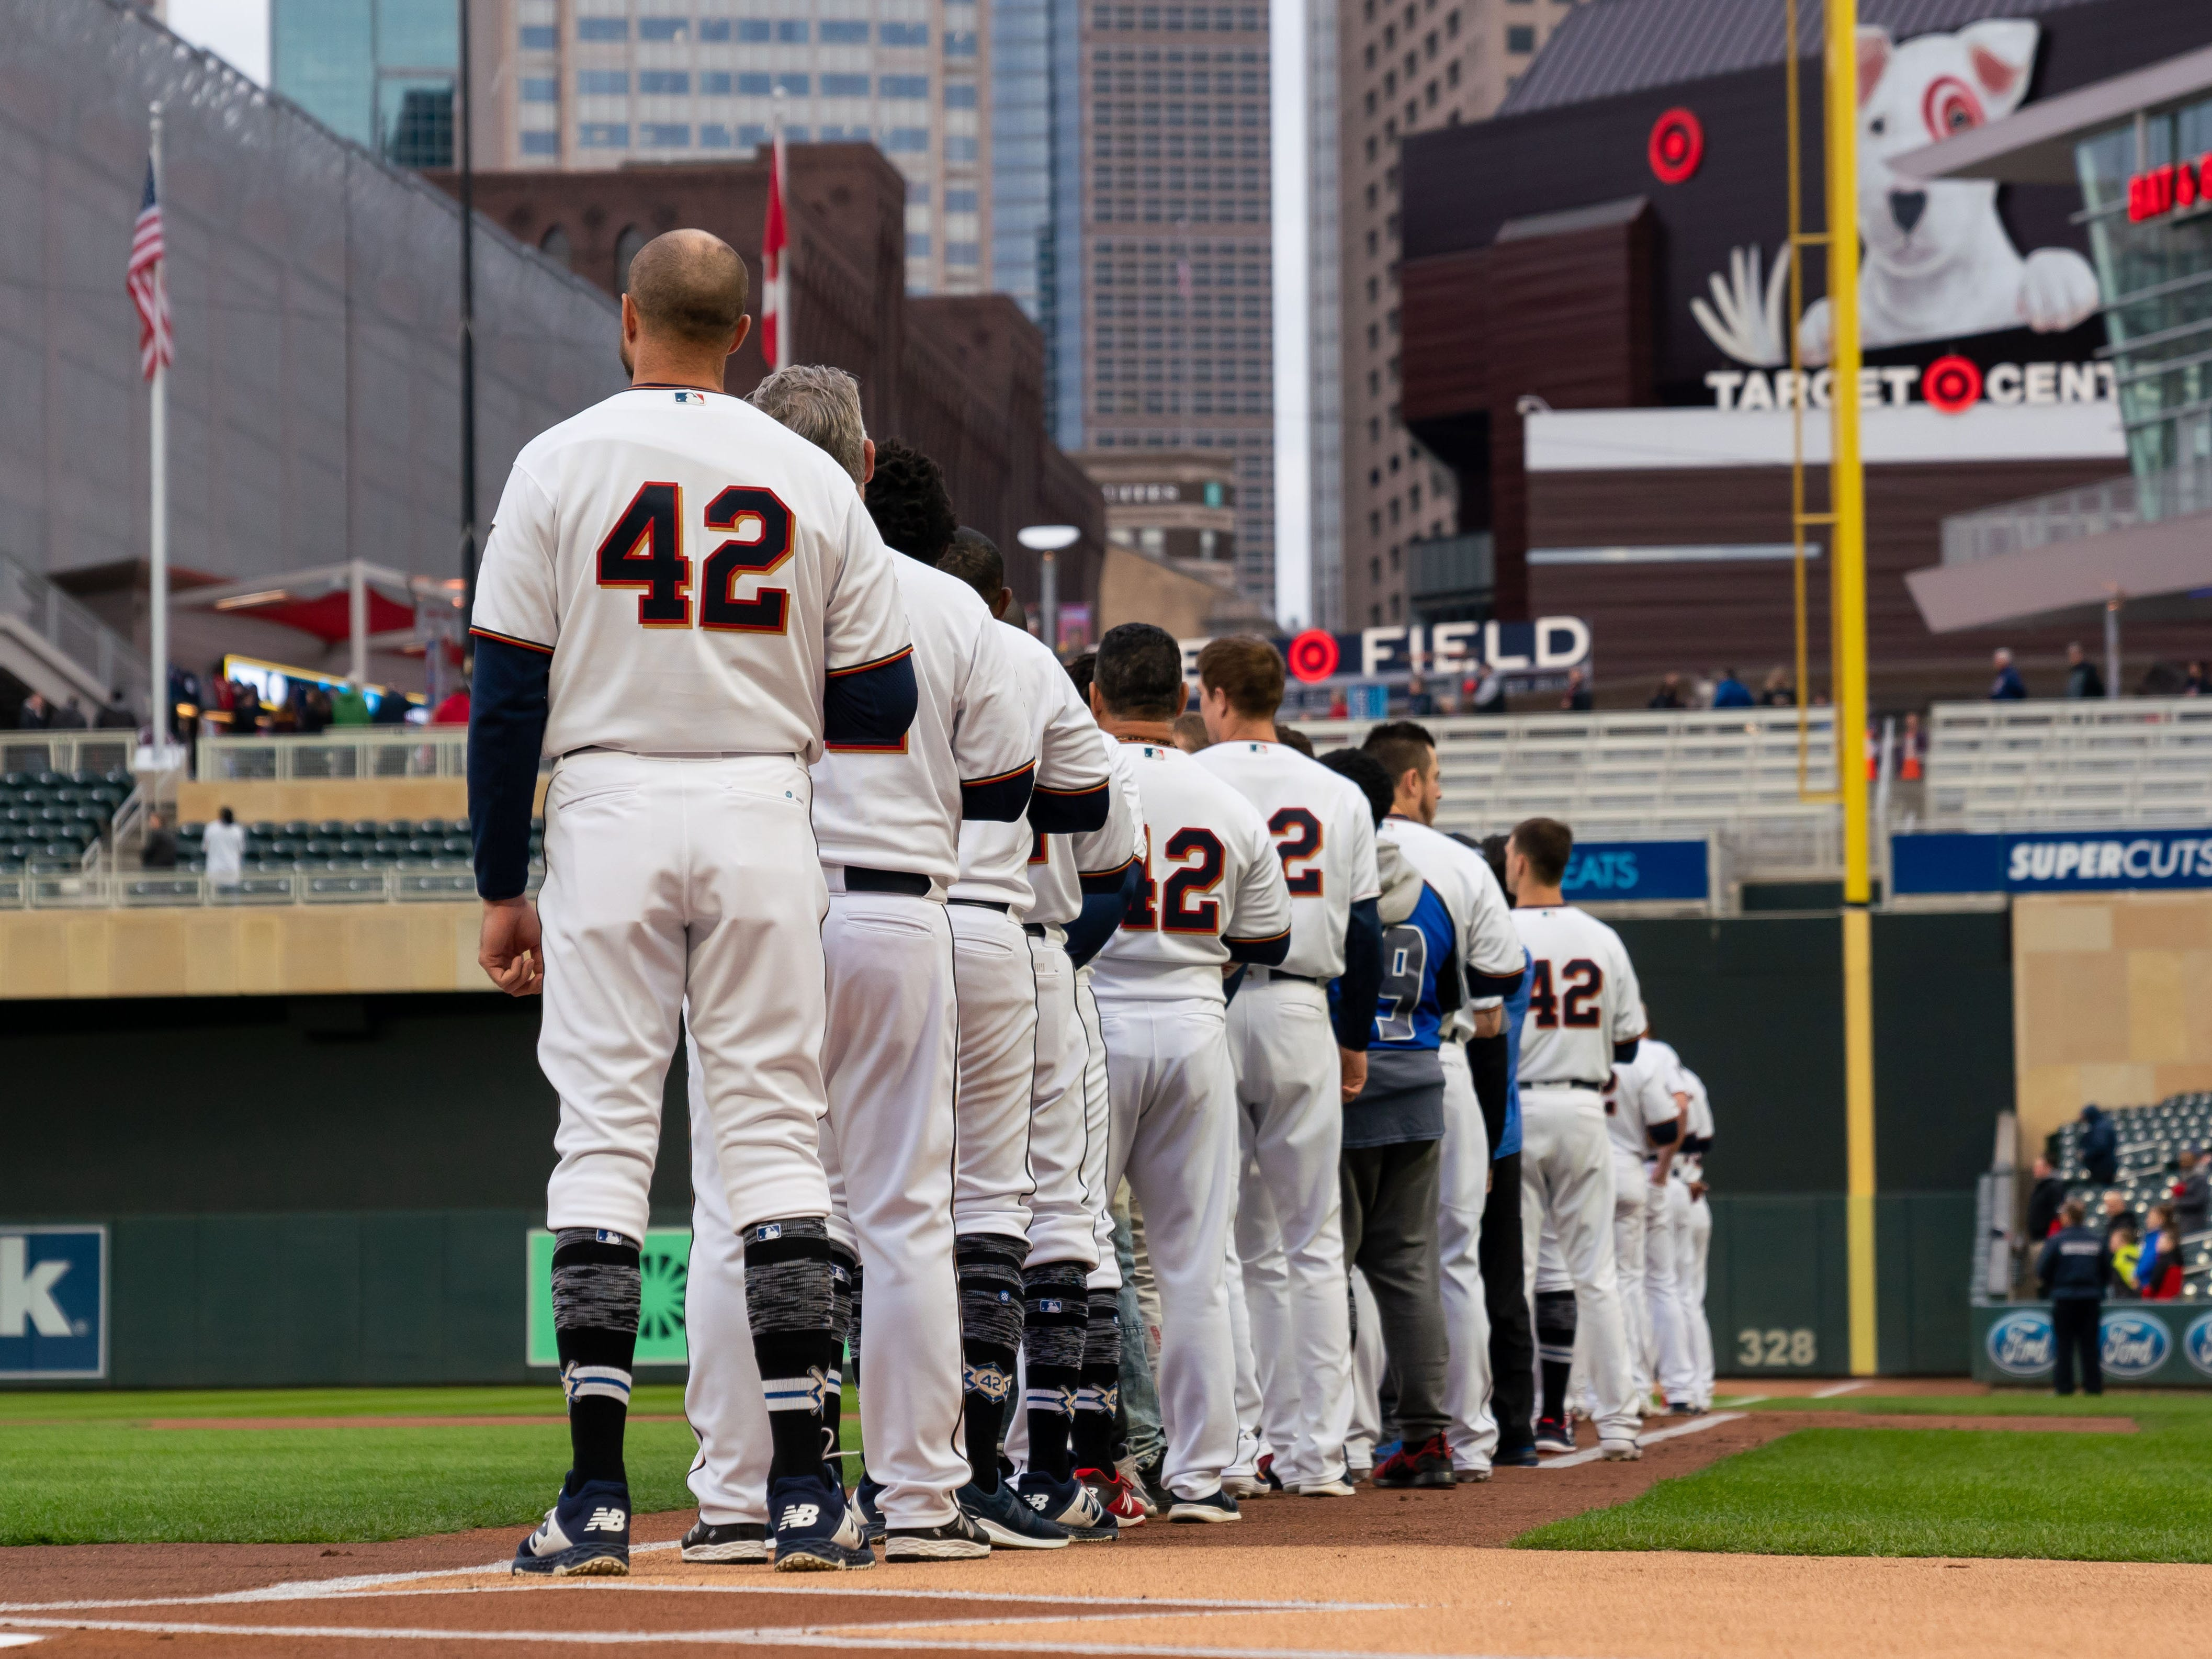 The Twins line up for the national anthem with the No. 42 on their jersey for Jackie Robinson.